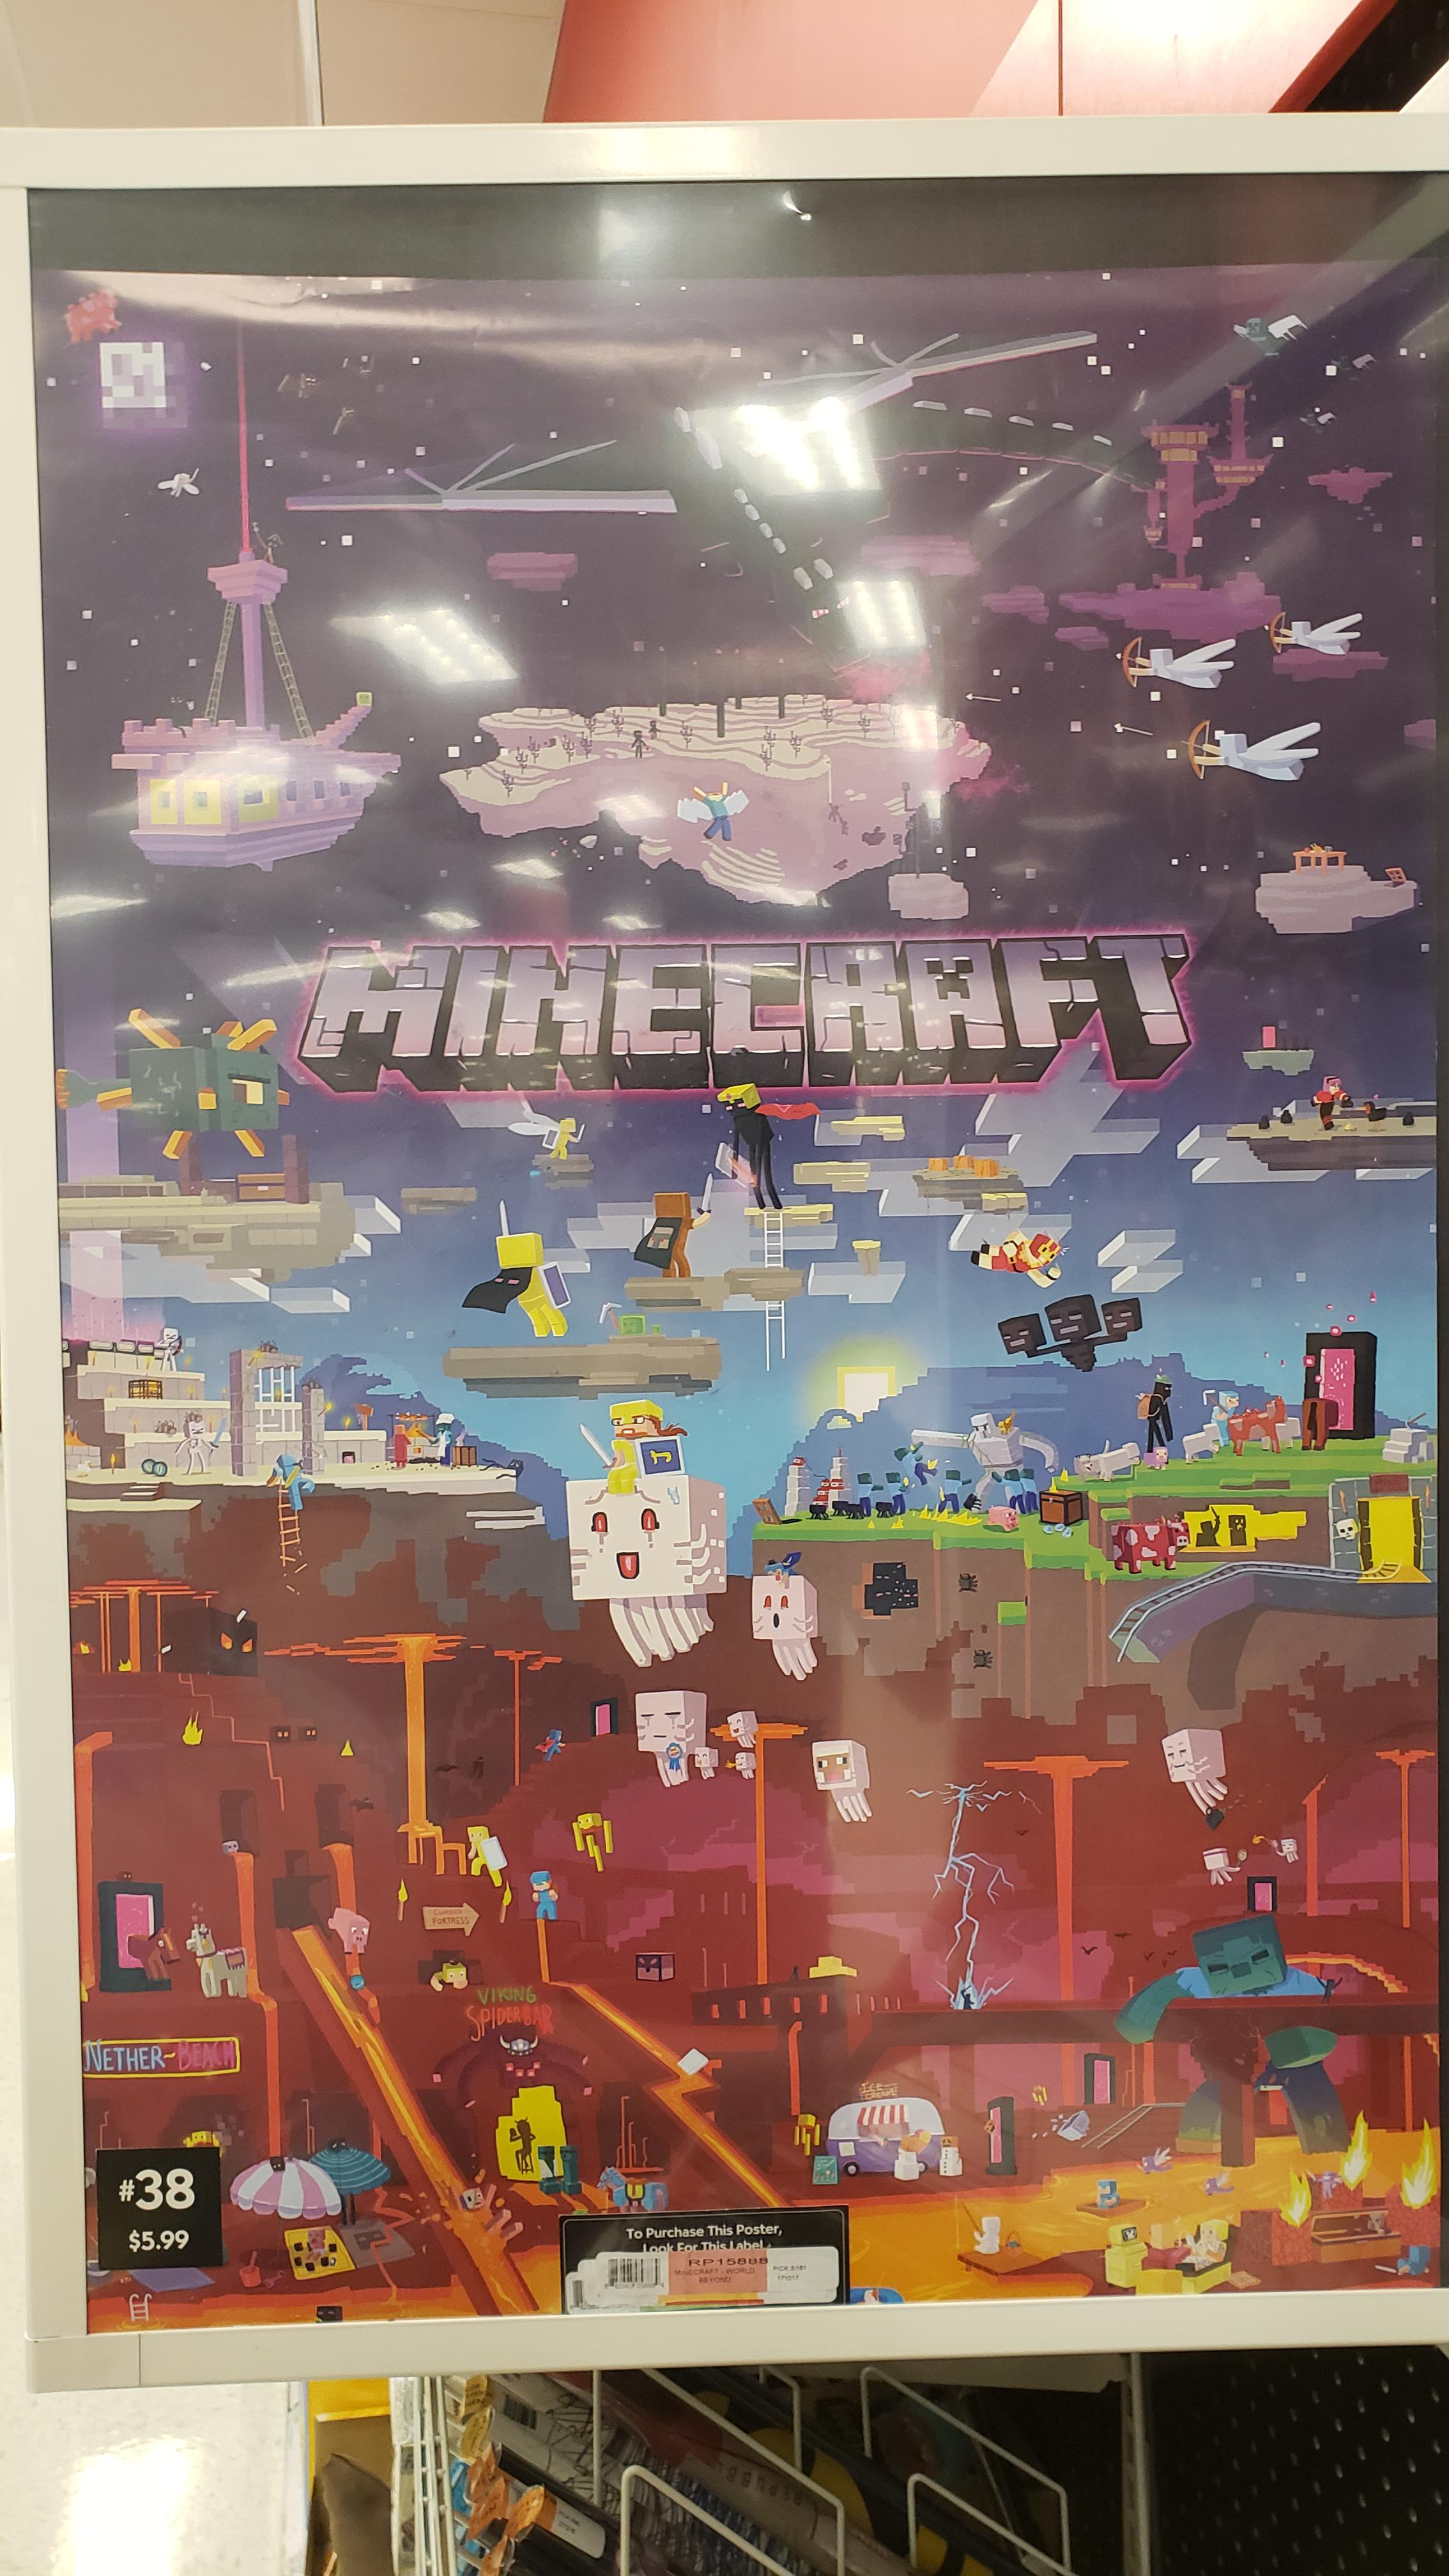 cool poster i loved finding all the